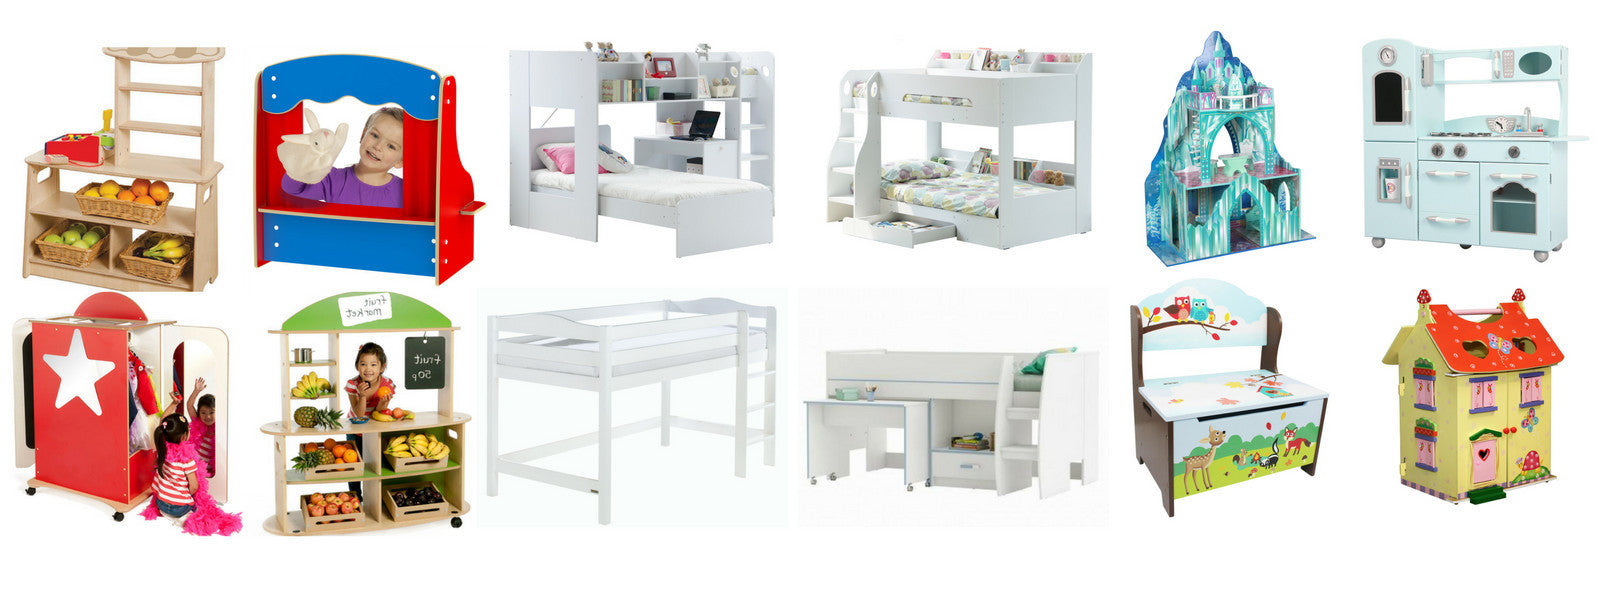 Wood Play kitchens